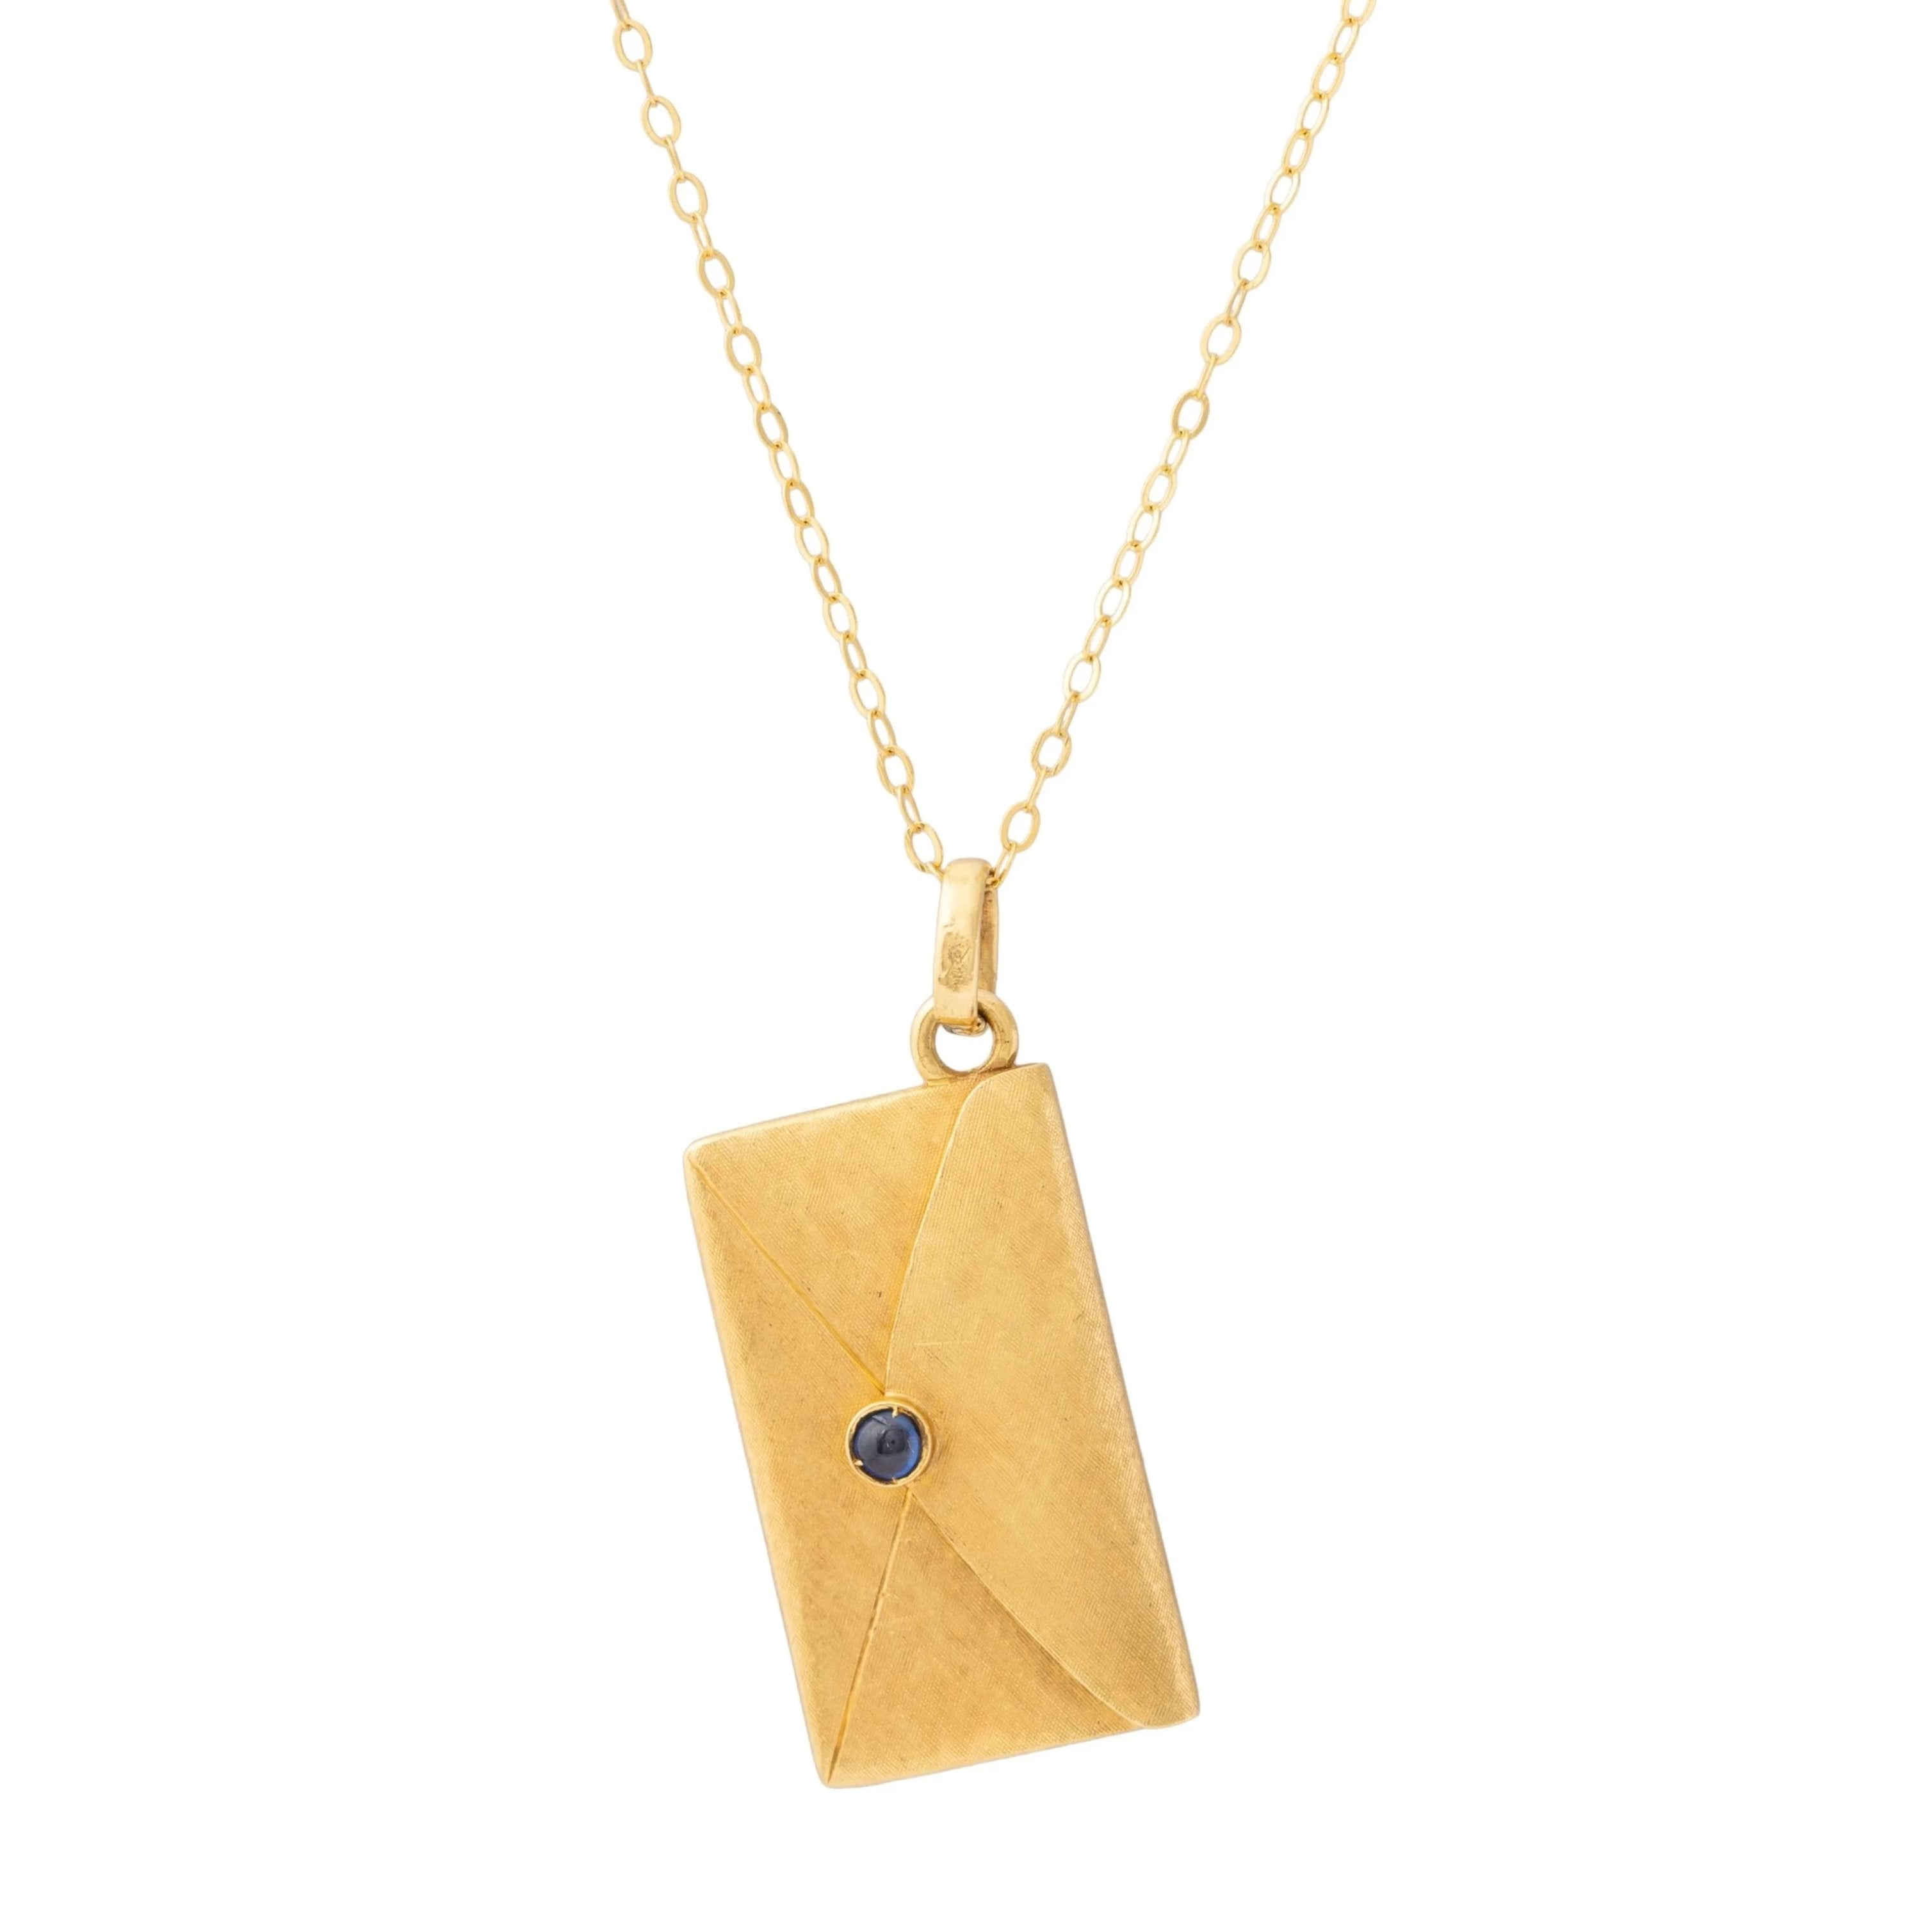 Envelope and Love Letter 18k Gold and Sapphire Necklace